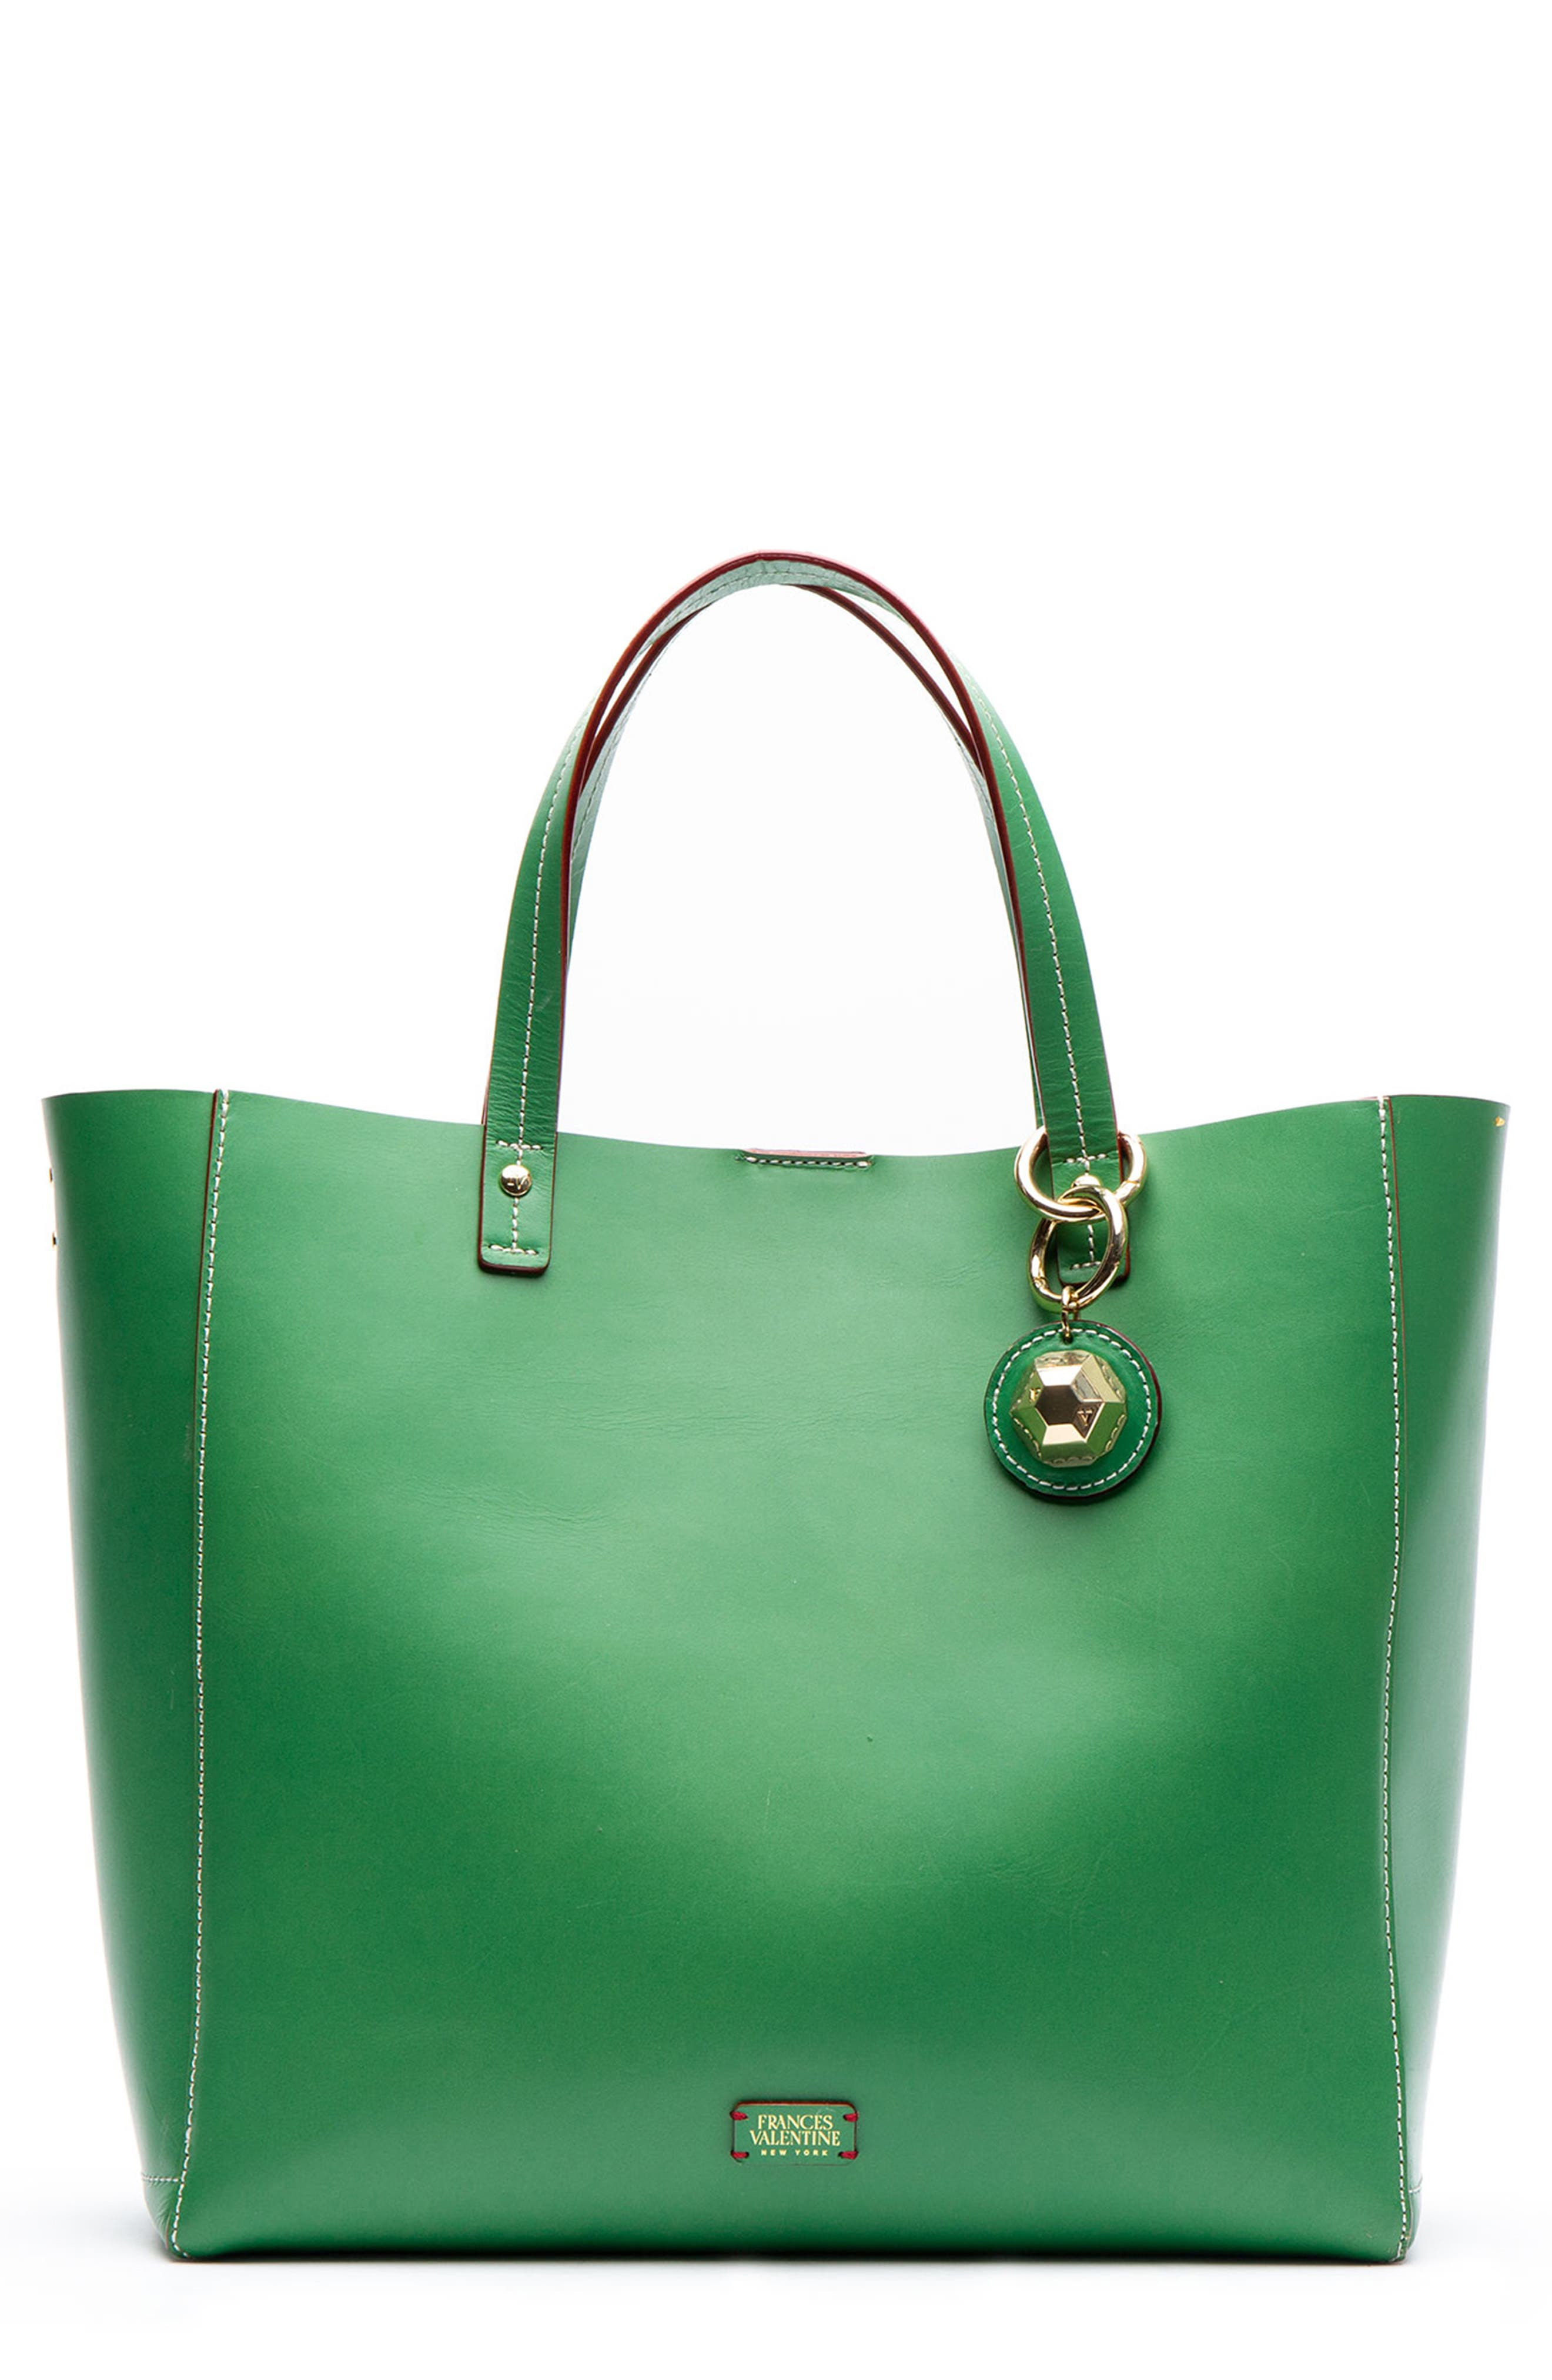 FRANCES VALENTINE Large Margaret Leather Tote in Green Ray